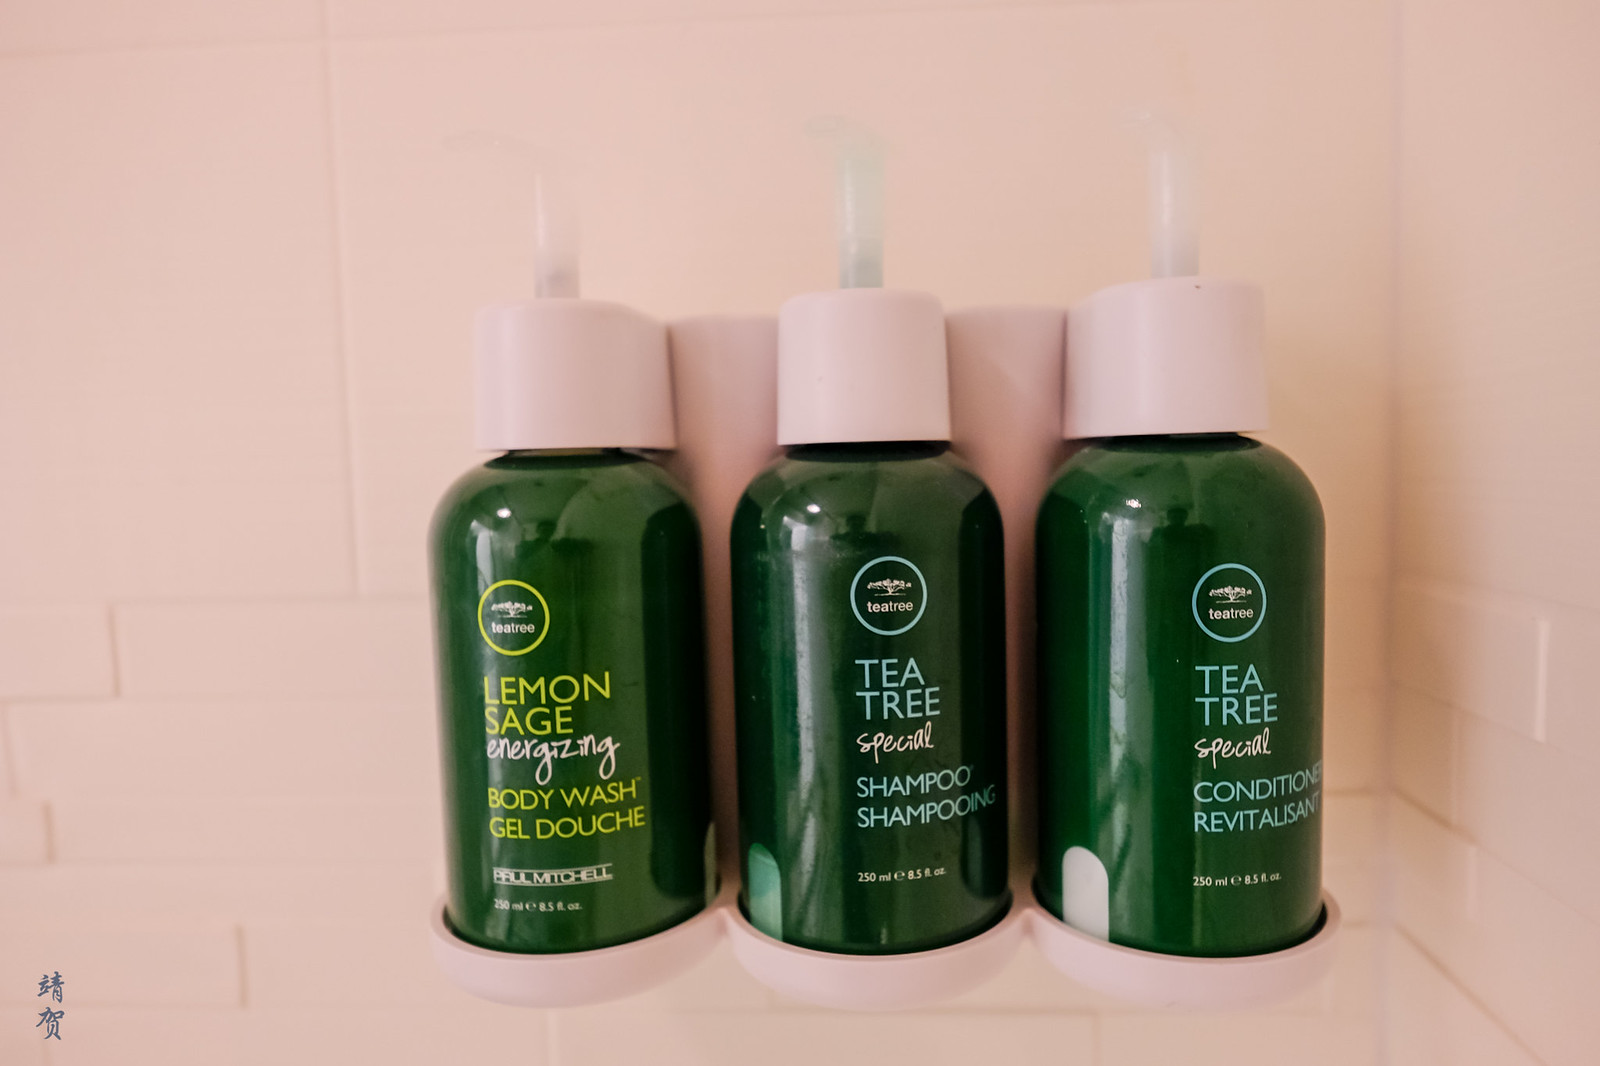 Tea Tree bath amenities